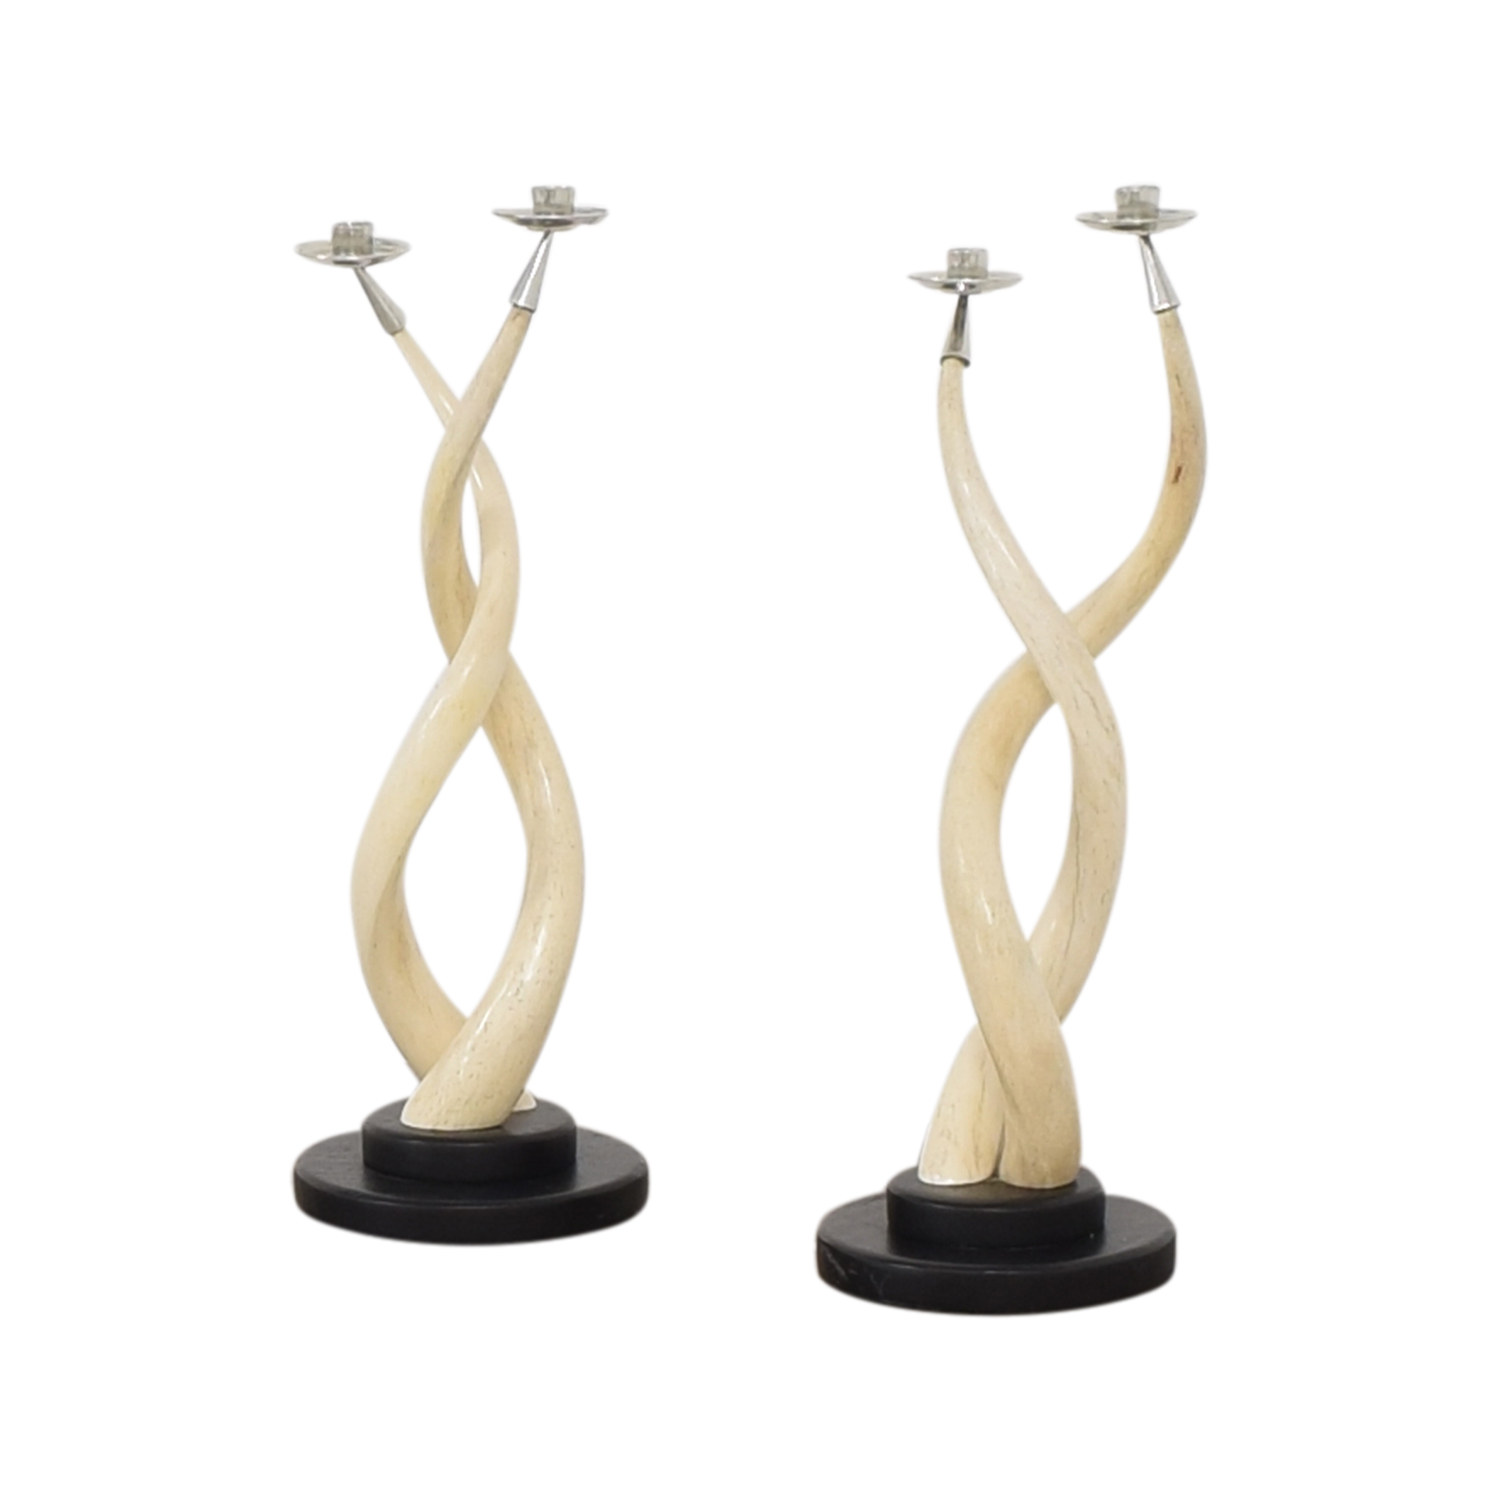 Twisted Horn Candlesticks sale